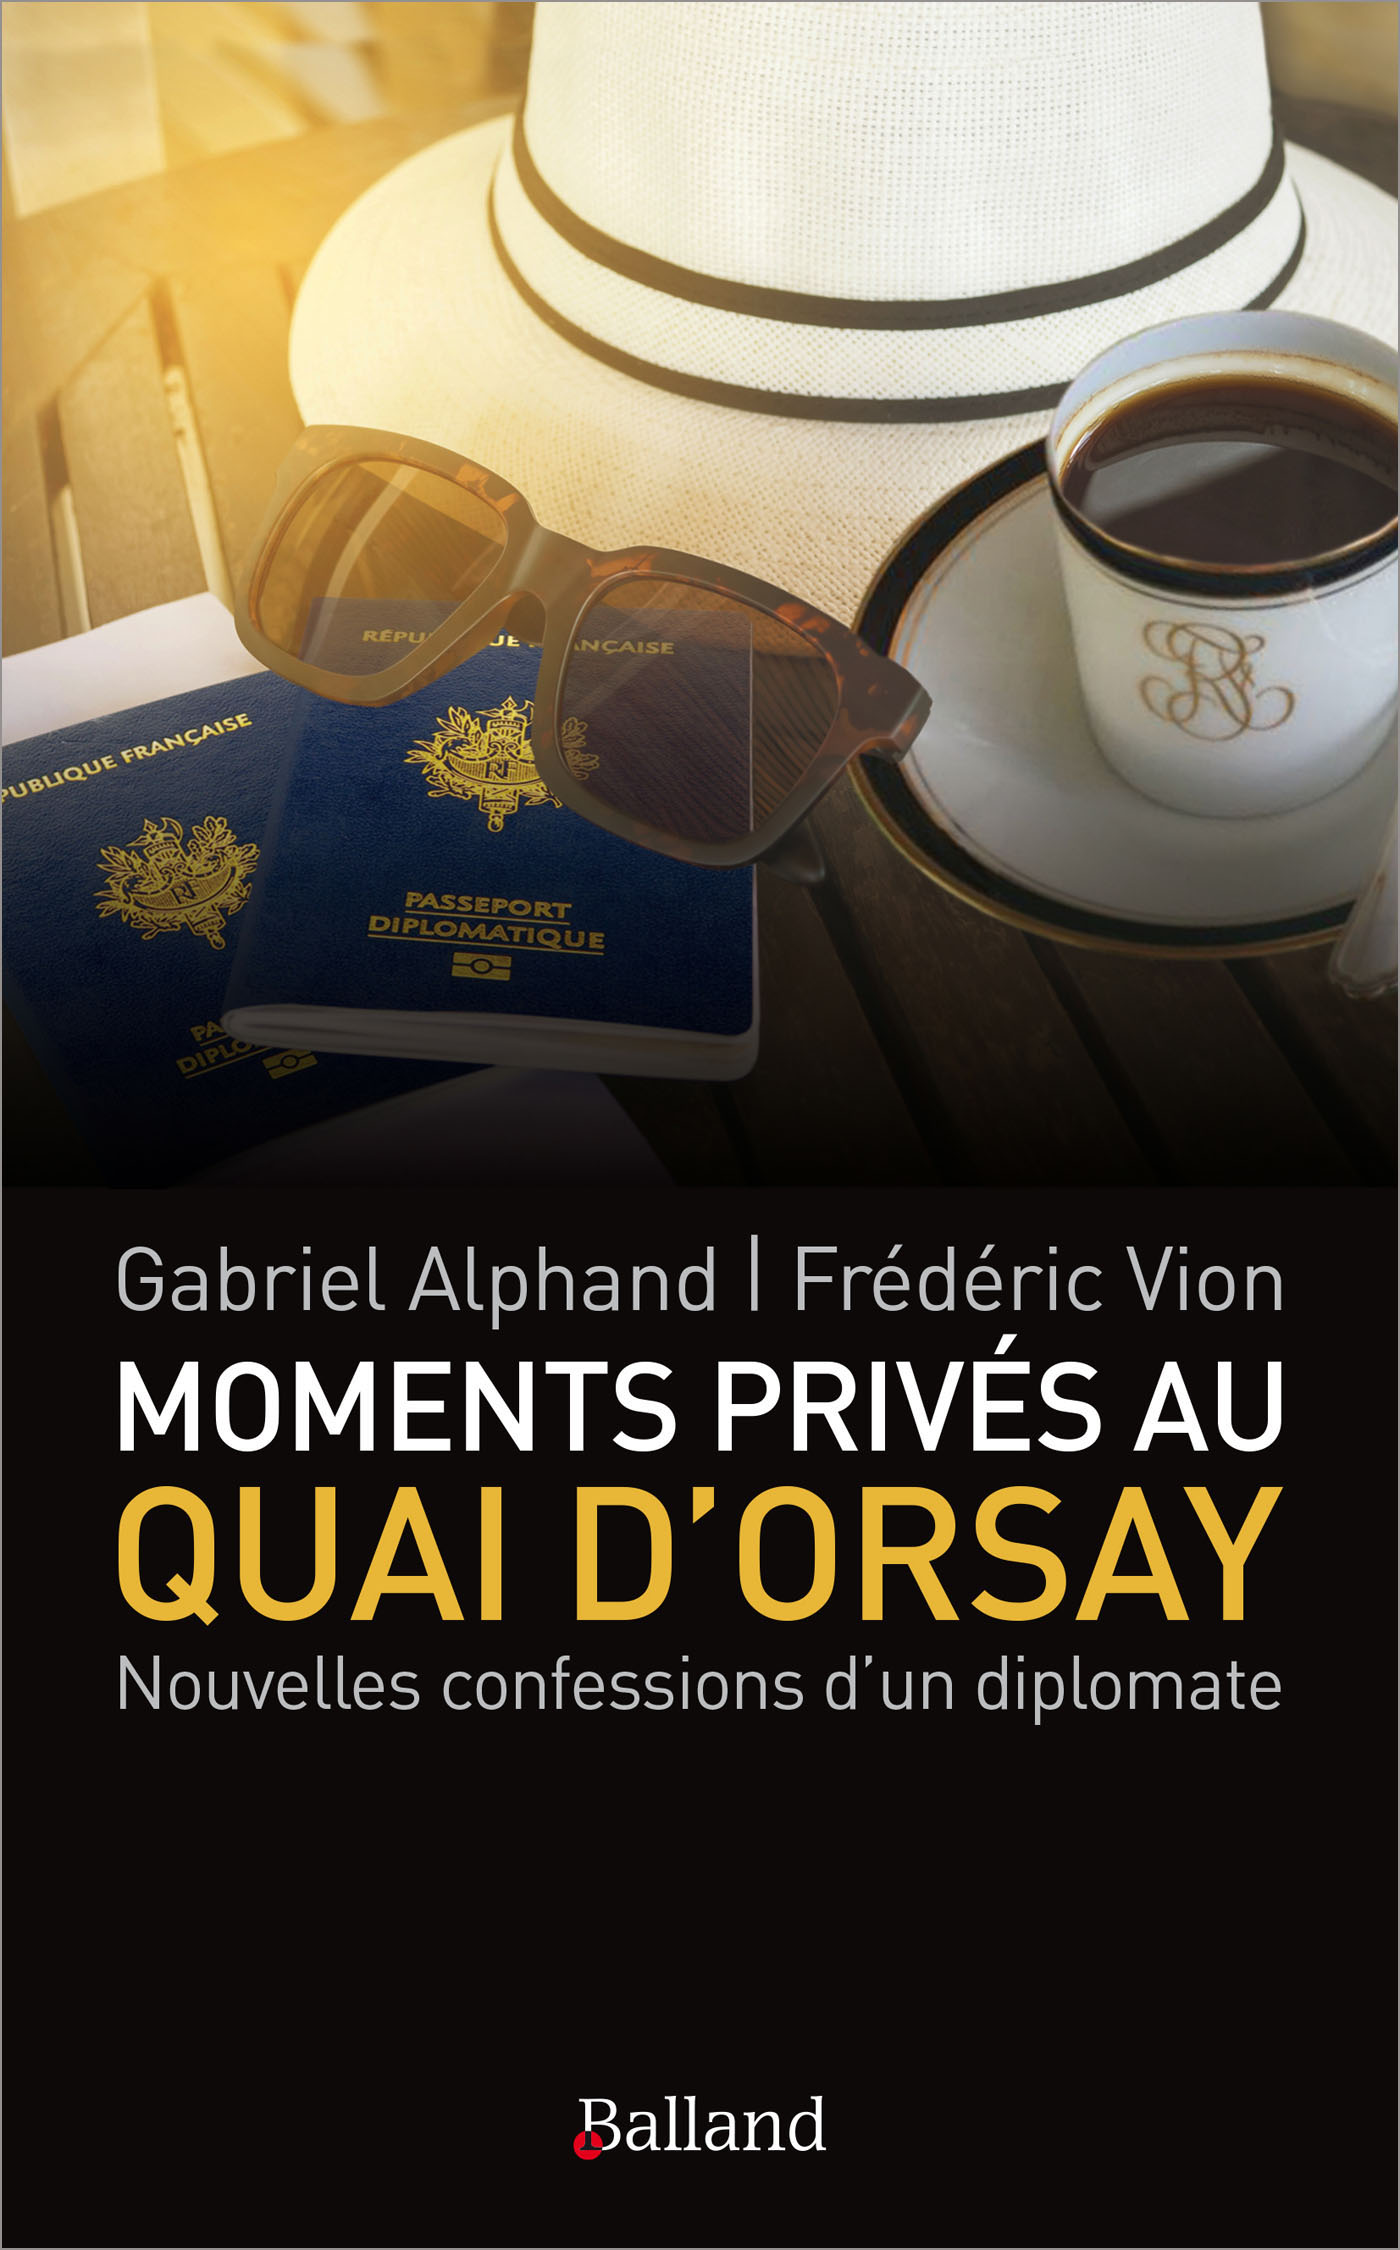 Moments privés au Quai d'Orsay